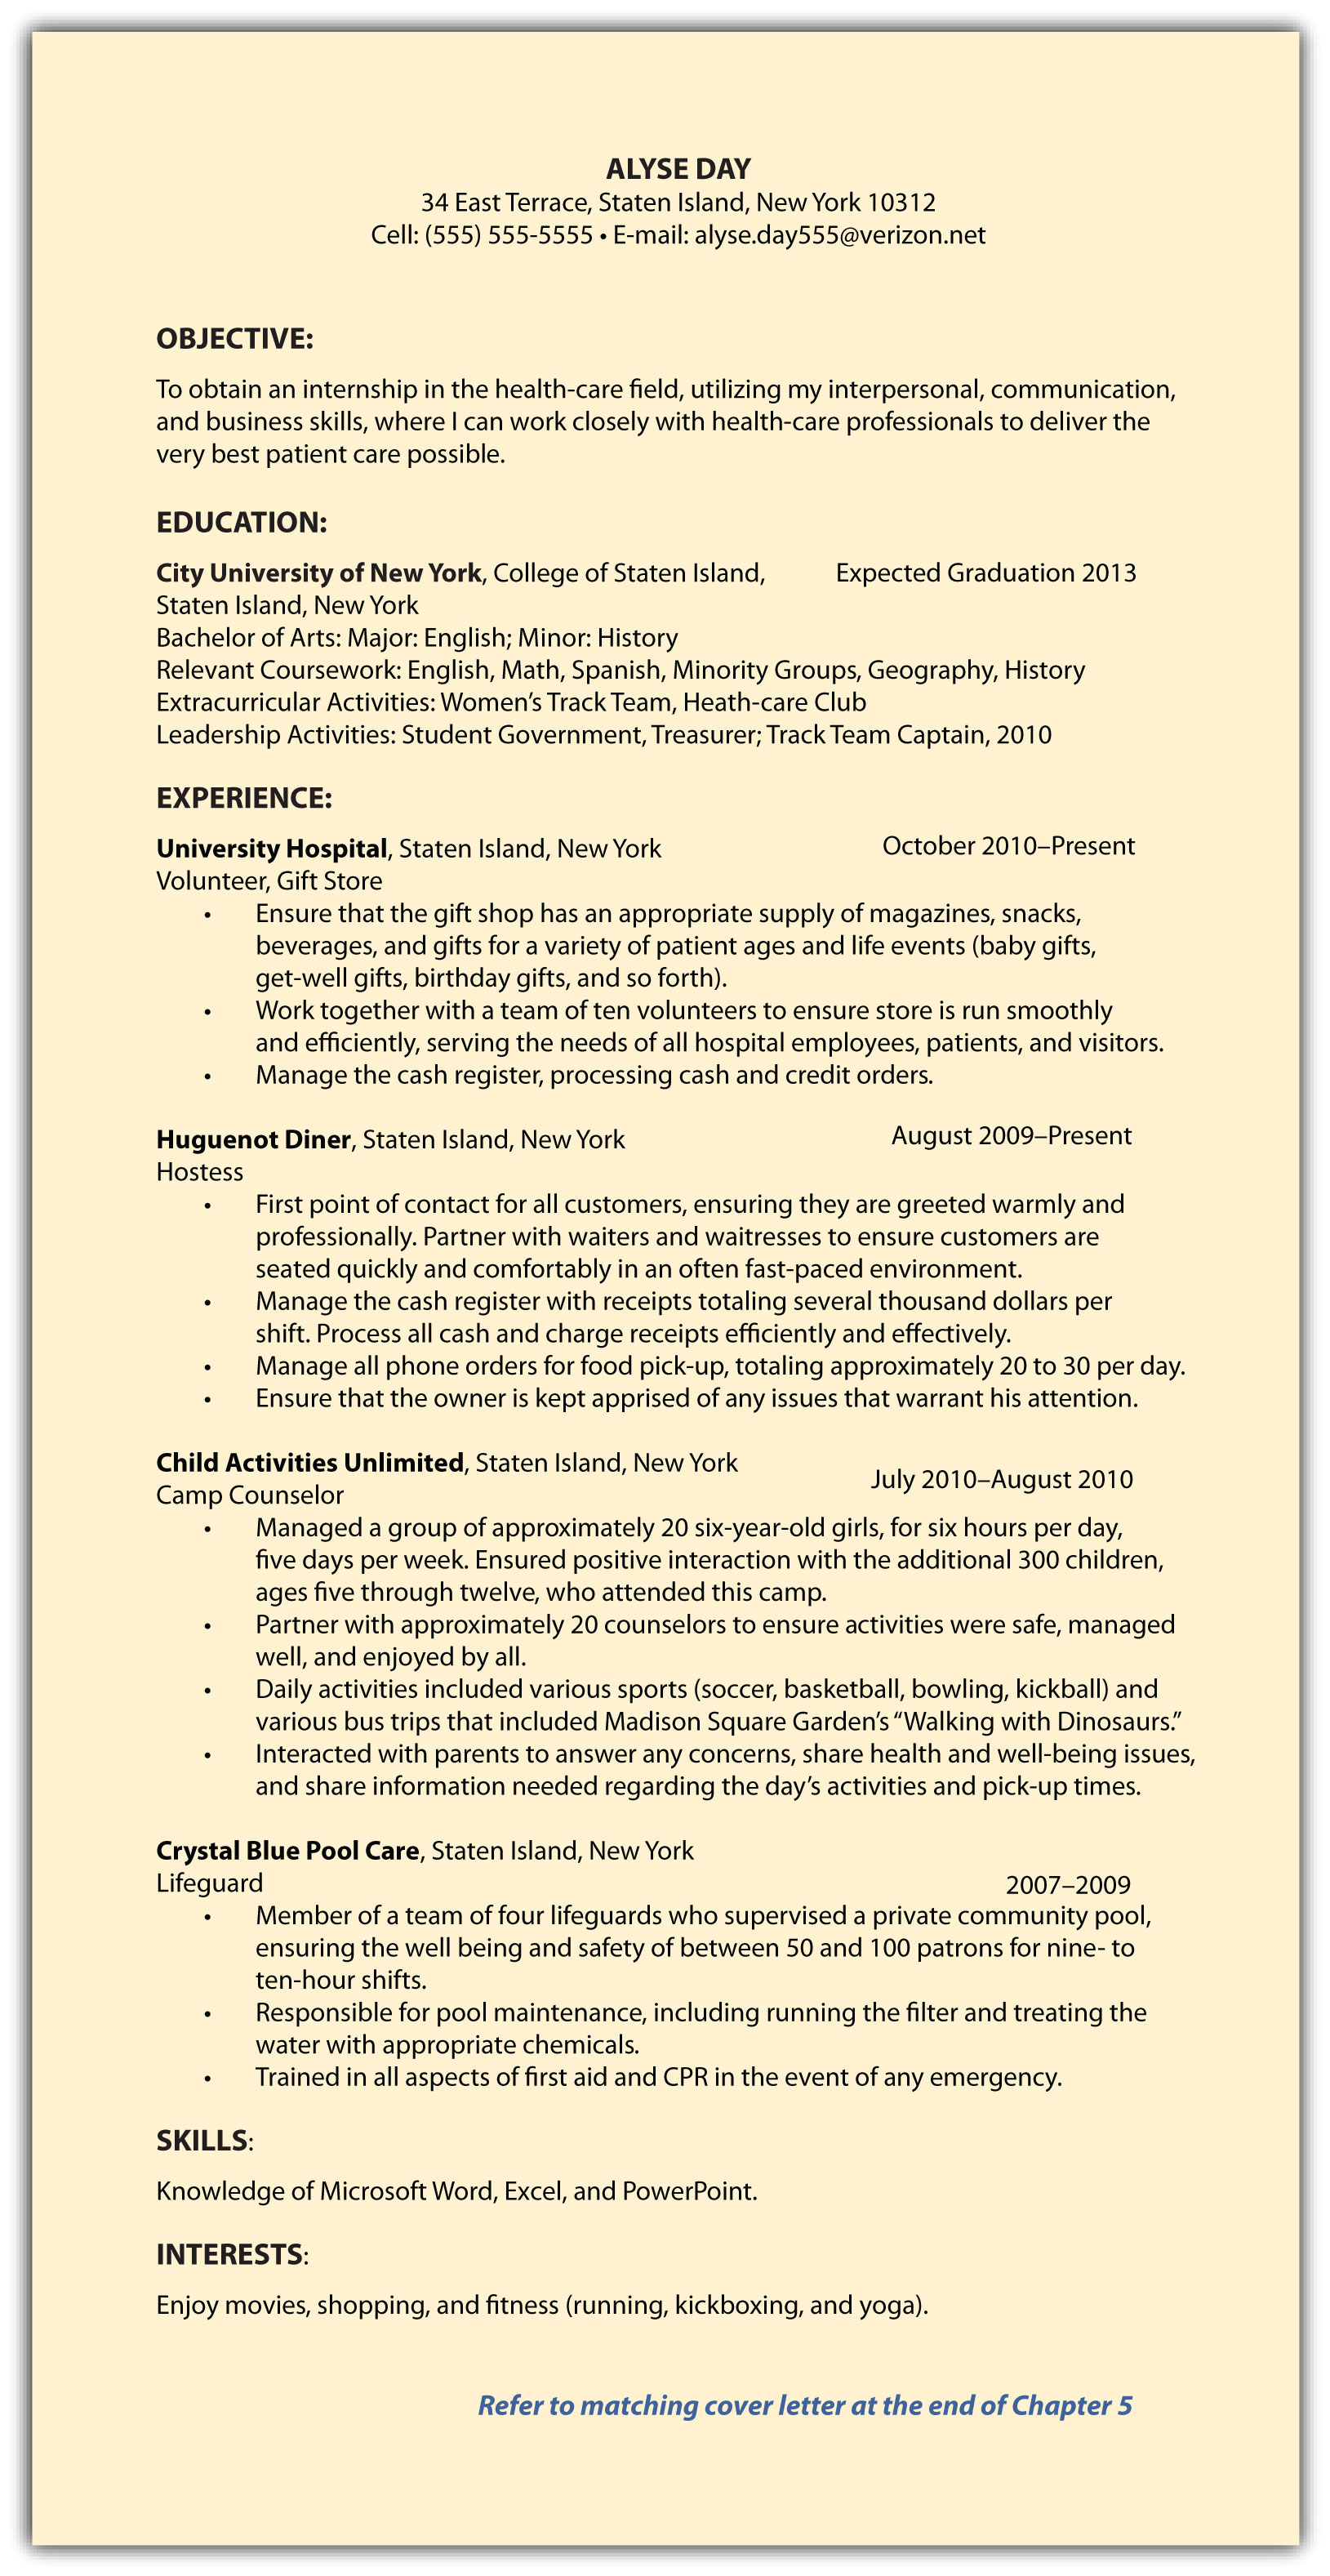 Cv Cover Letter A Concise And Focused Cover Letter That Can Be  Lifeguard Cover Letter